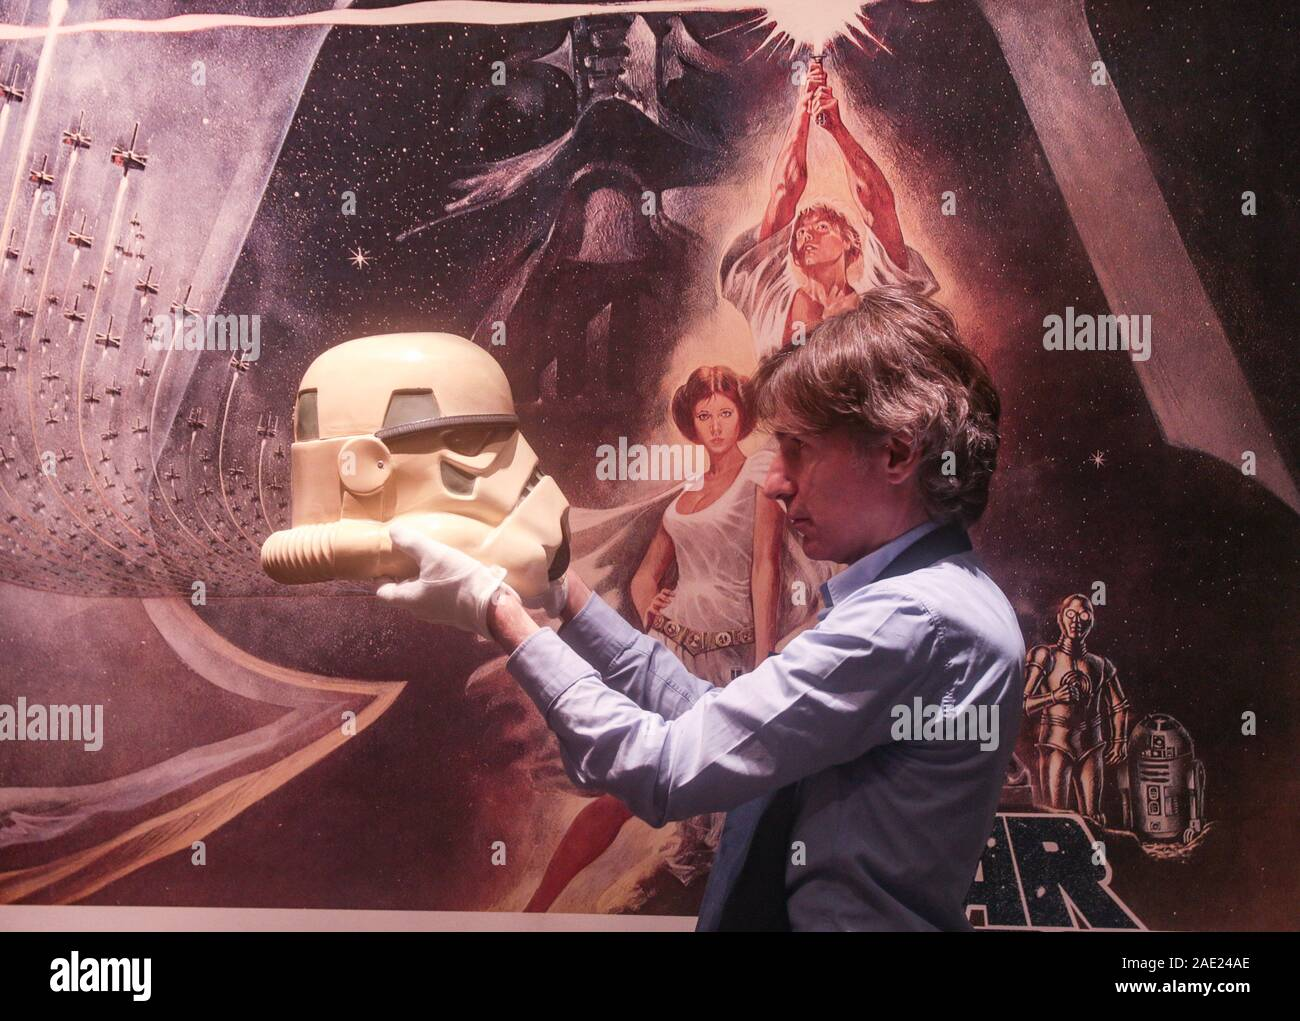 Episode Iv High Resolution Stock Photography And Images Alamy